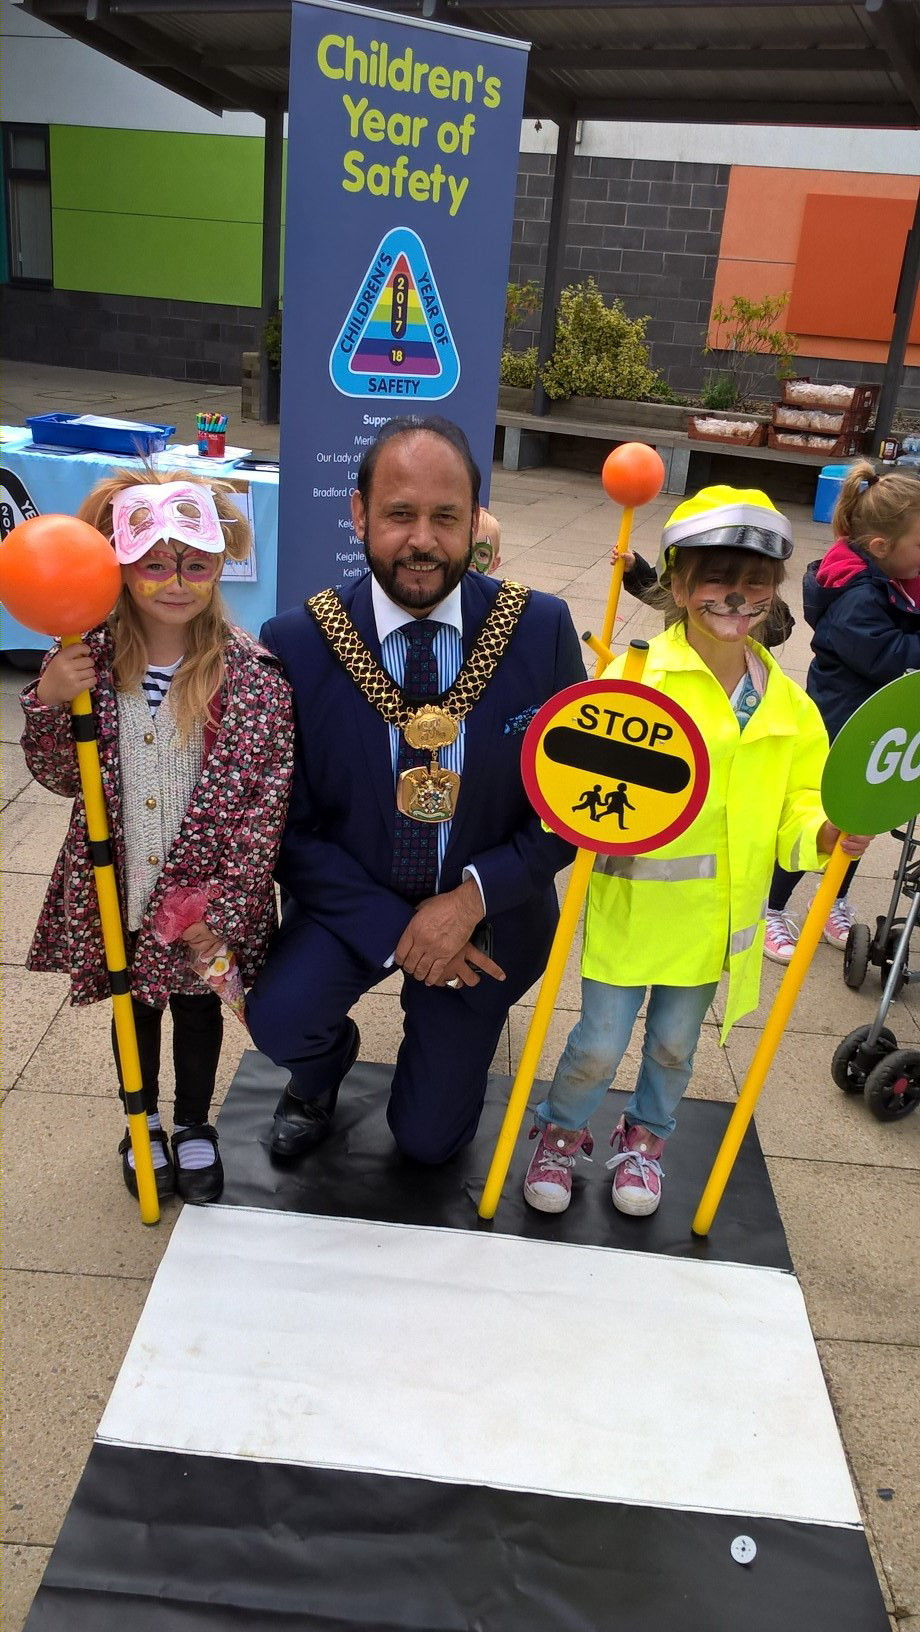 Lillie Mae Wilkinson, five, and Tia-Rose Curry, six, help the Lord Mayor of Bradford, Cllr Abid Hussain, brush-up on road safety at Braithwaite and Guard House Gala